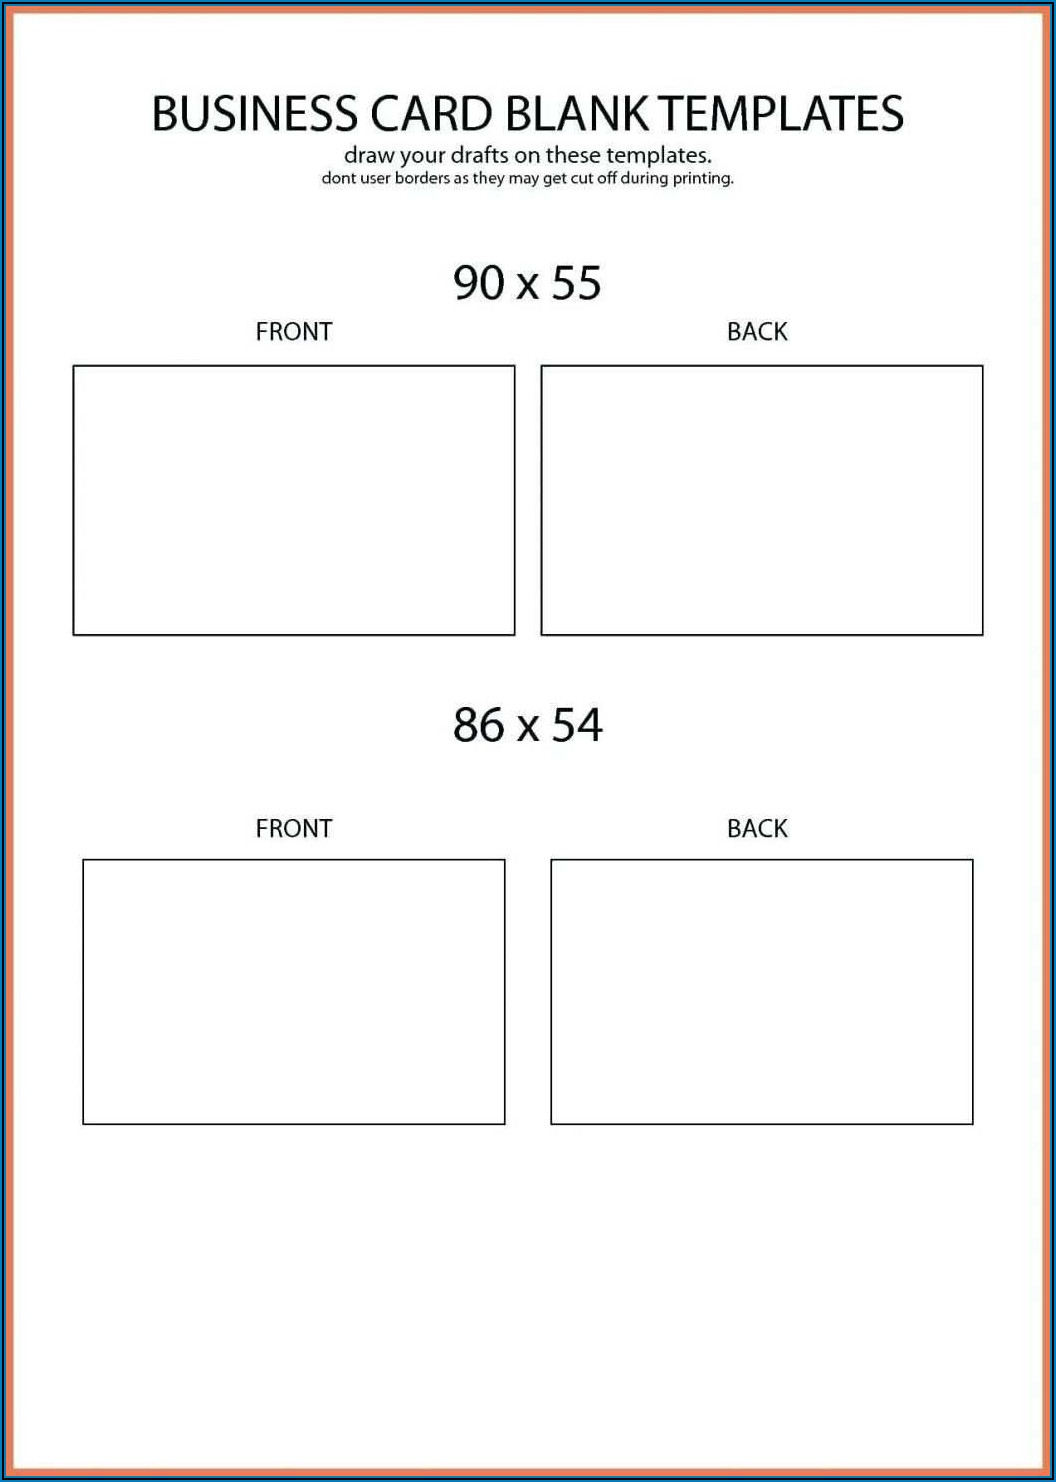 Business Card Template For Printing